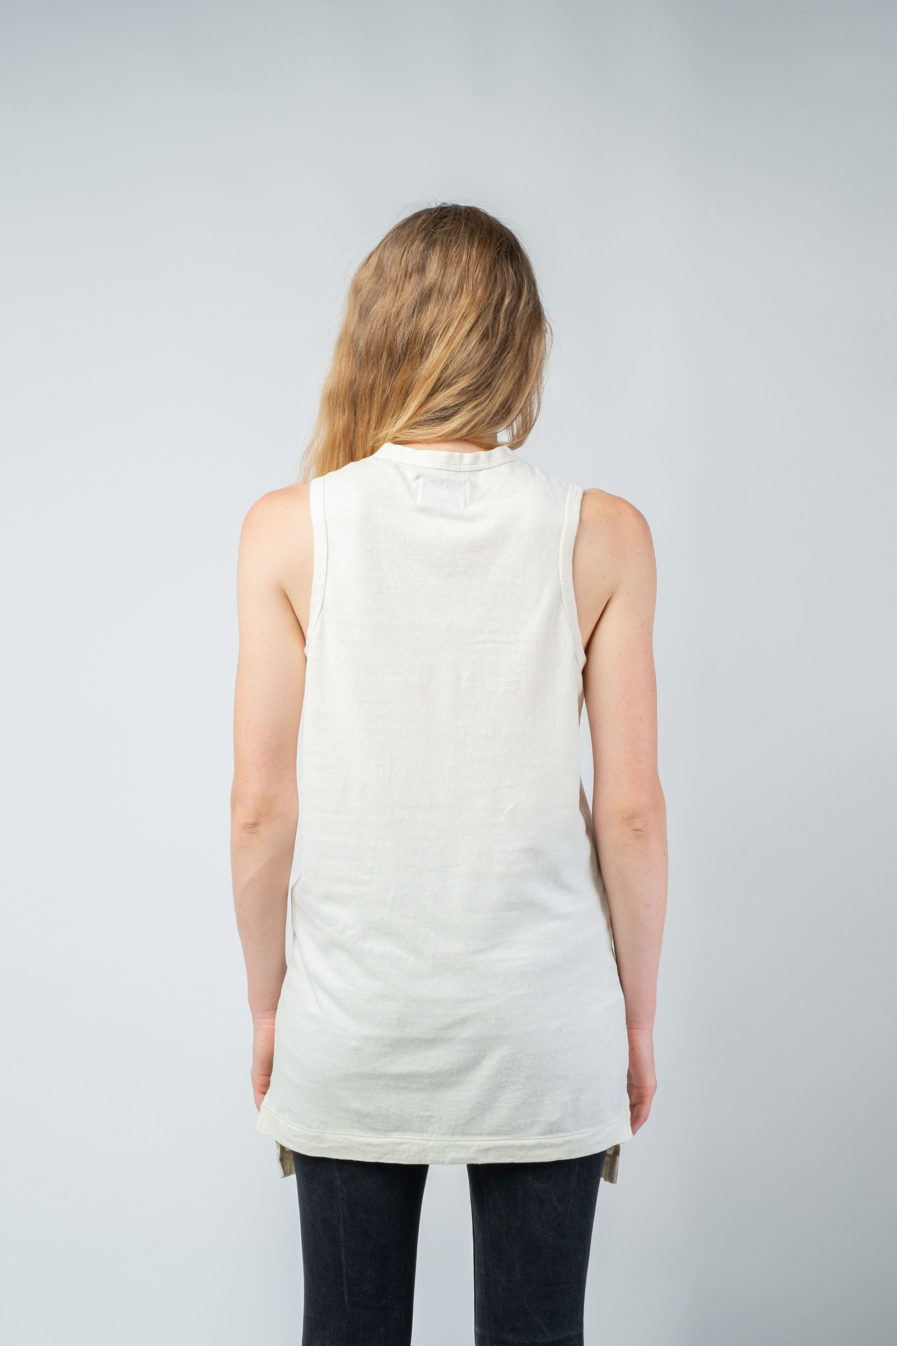 WOMAN unisex singlet tanktop hemp organic cotton MALIK Blank canvas back